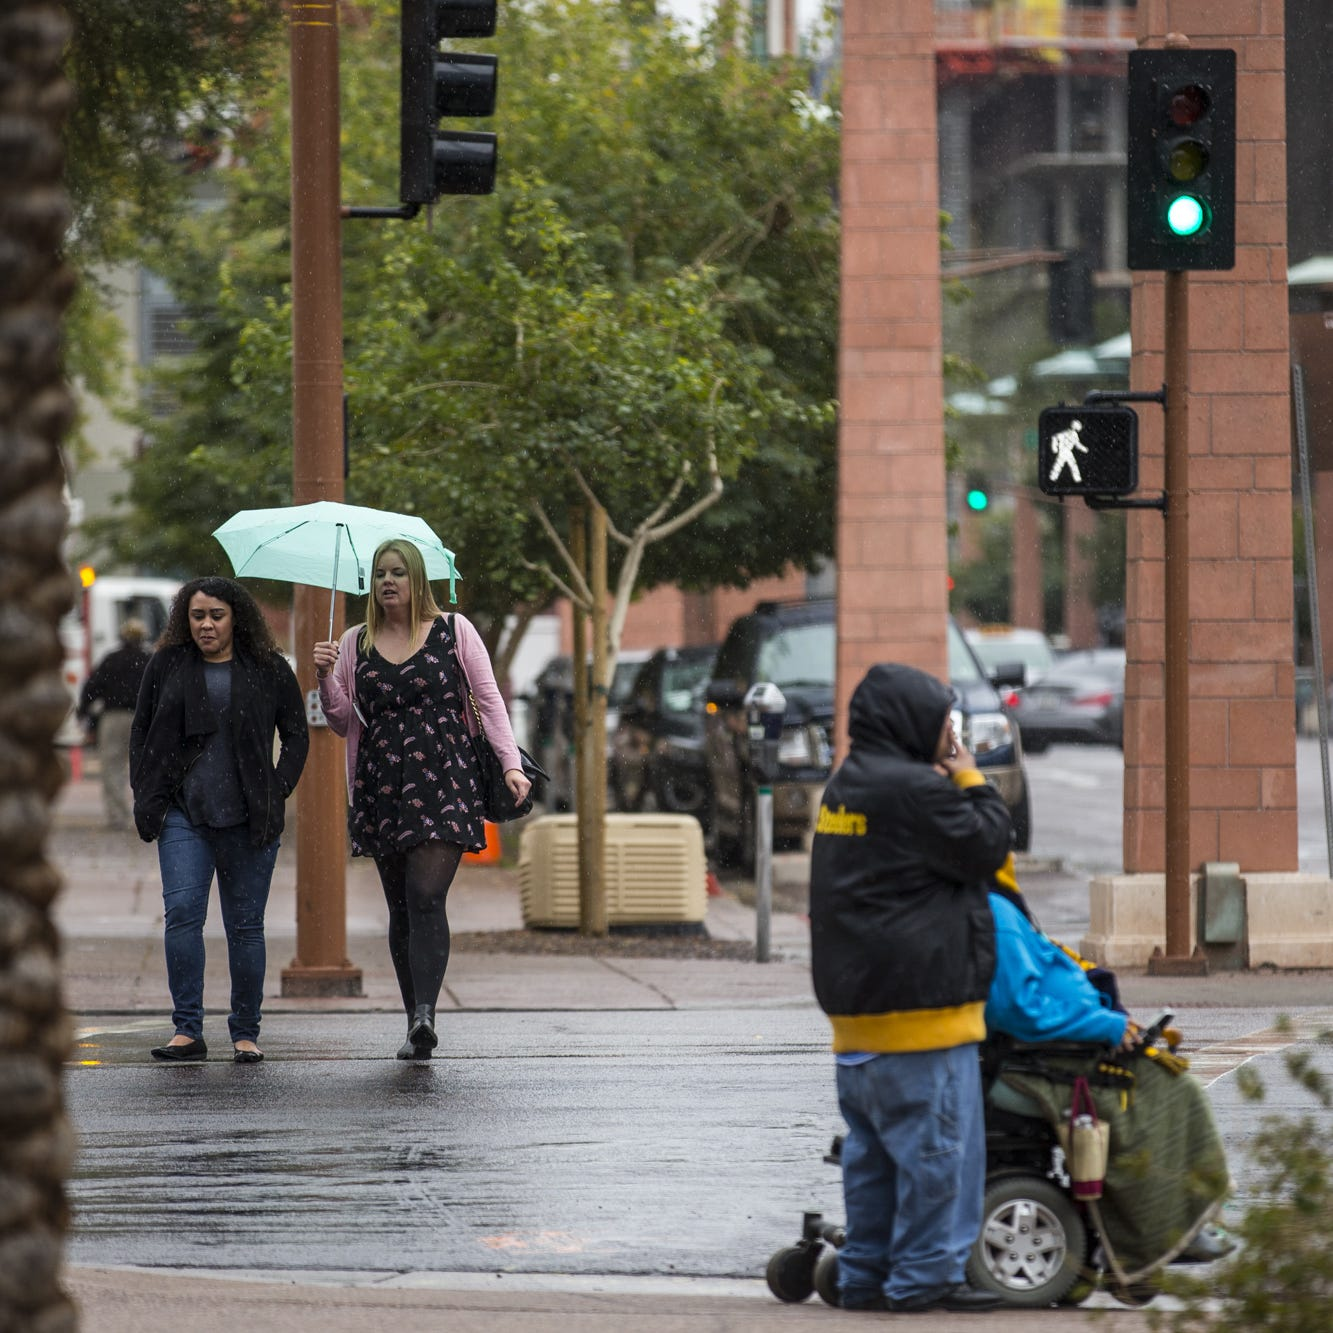 People cross the street in the rain on Thursday, Feb. 14, 2019, in downtown Phoenix.